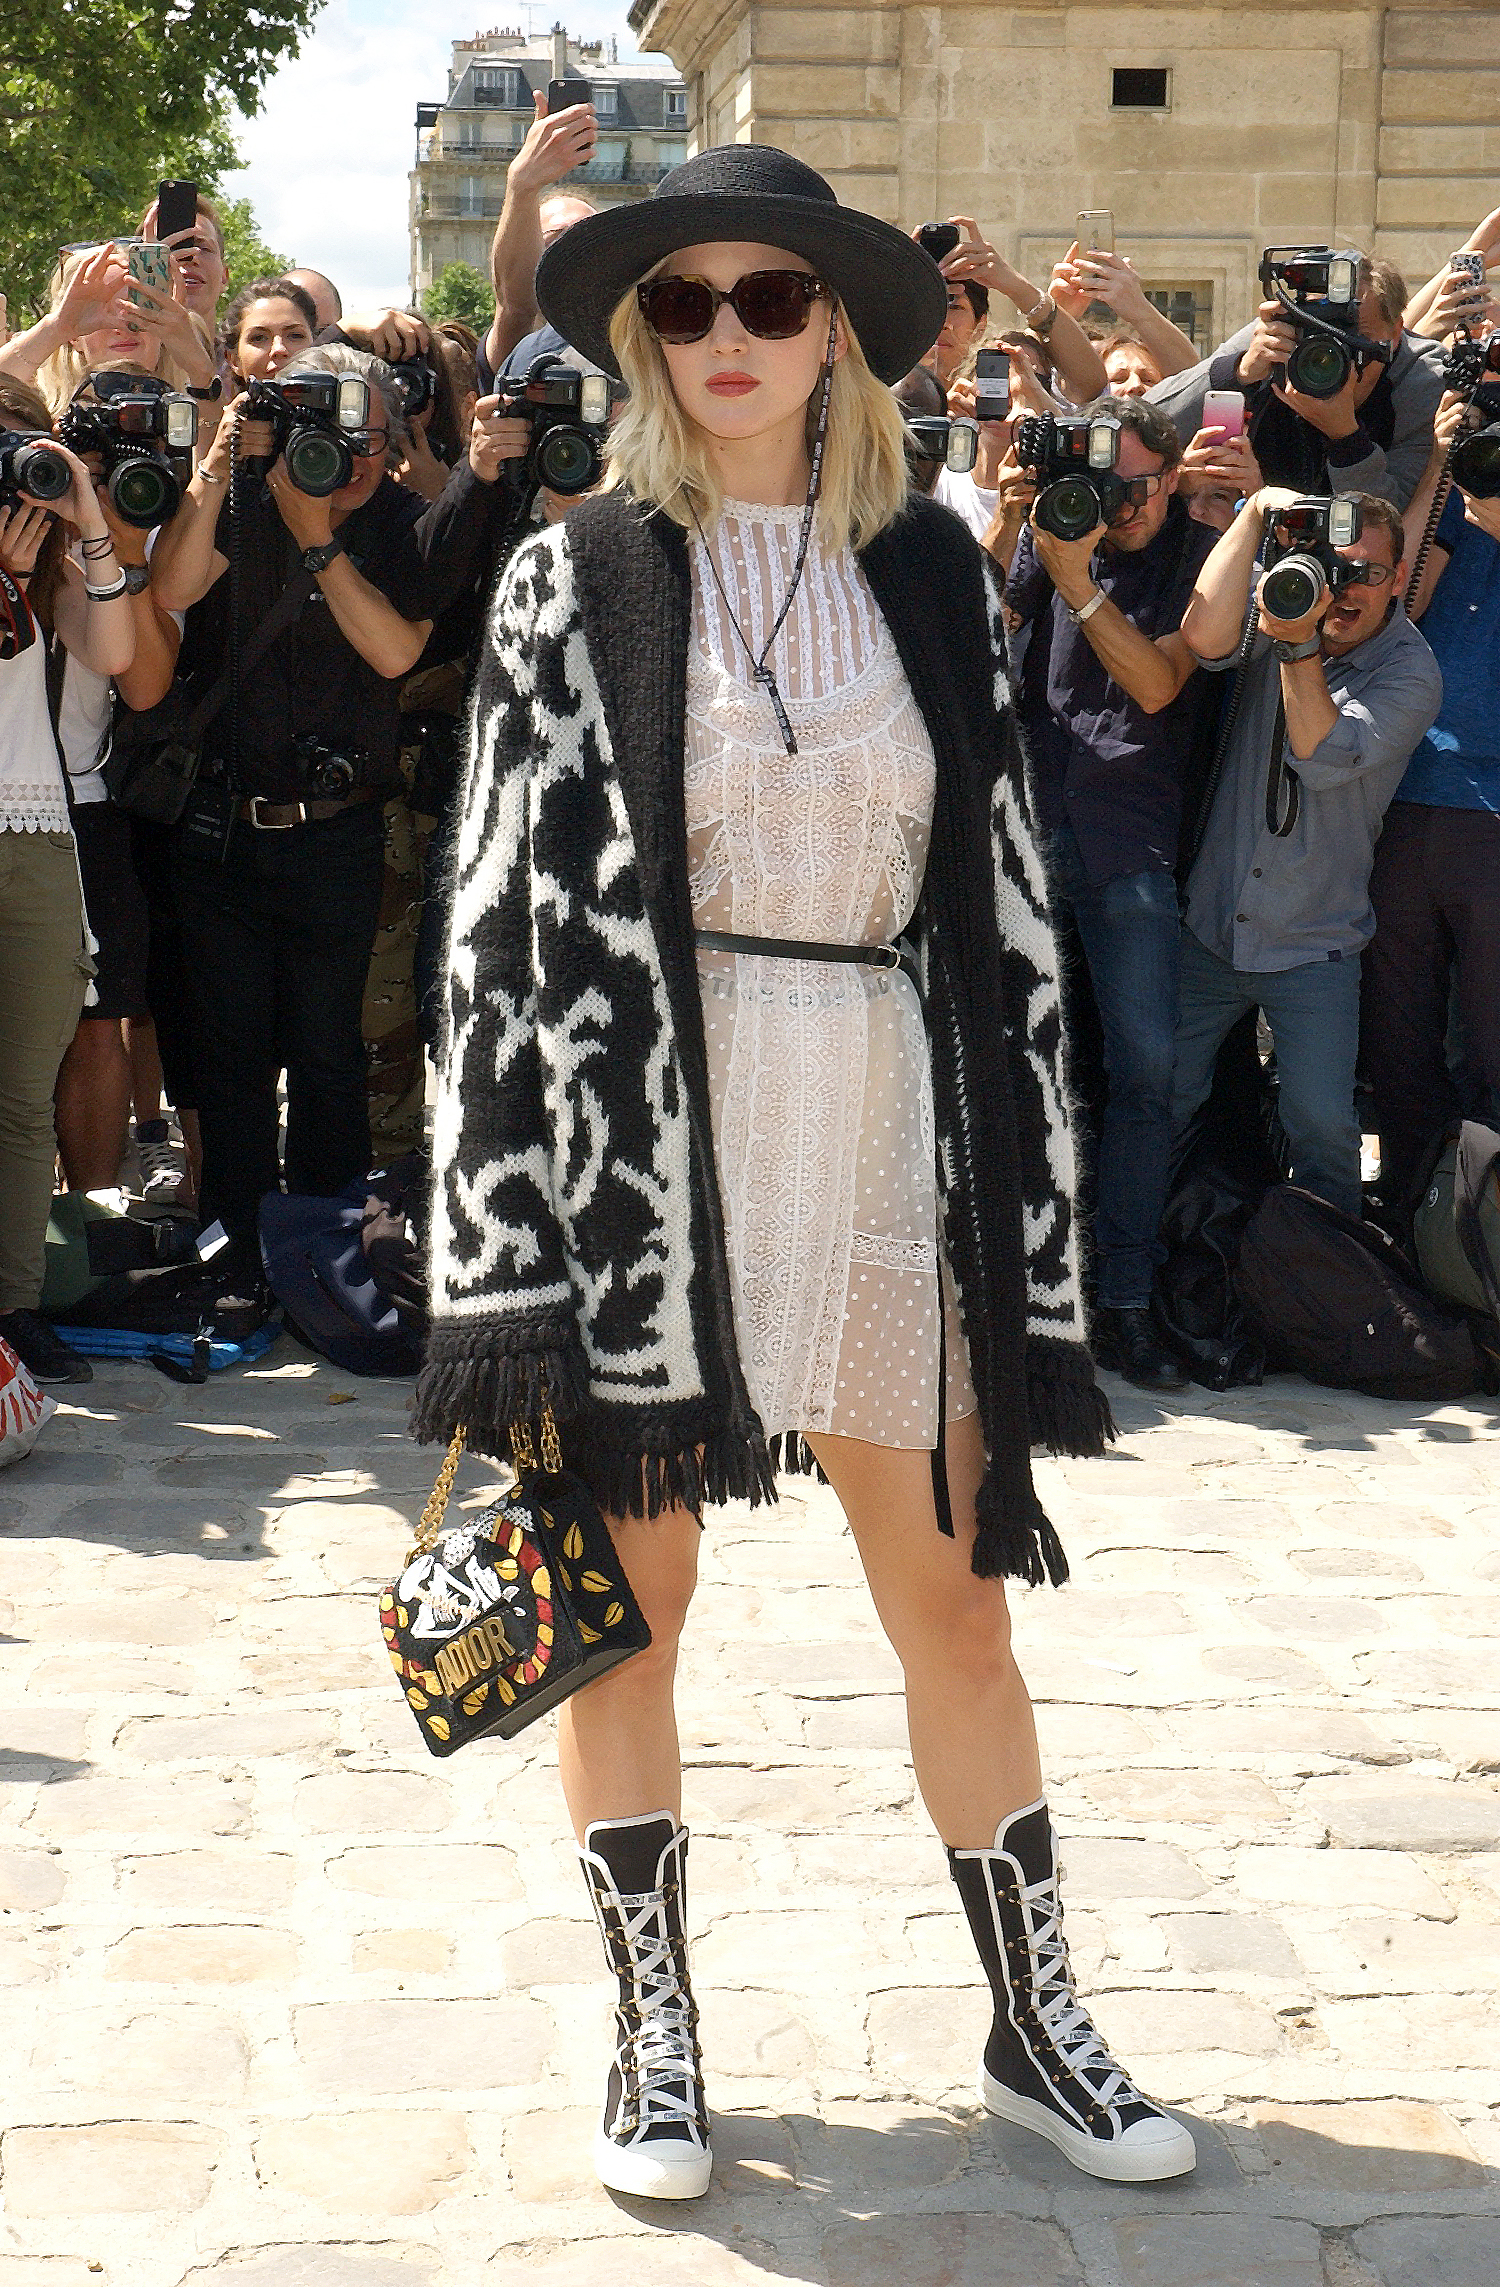 Paris Fashion Week - Christian Dior - Arrivals  Jennifer Lawrence biggest shoe trend of the year